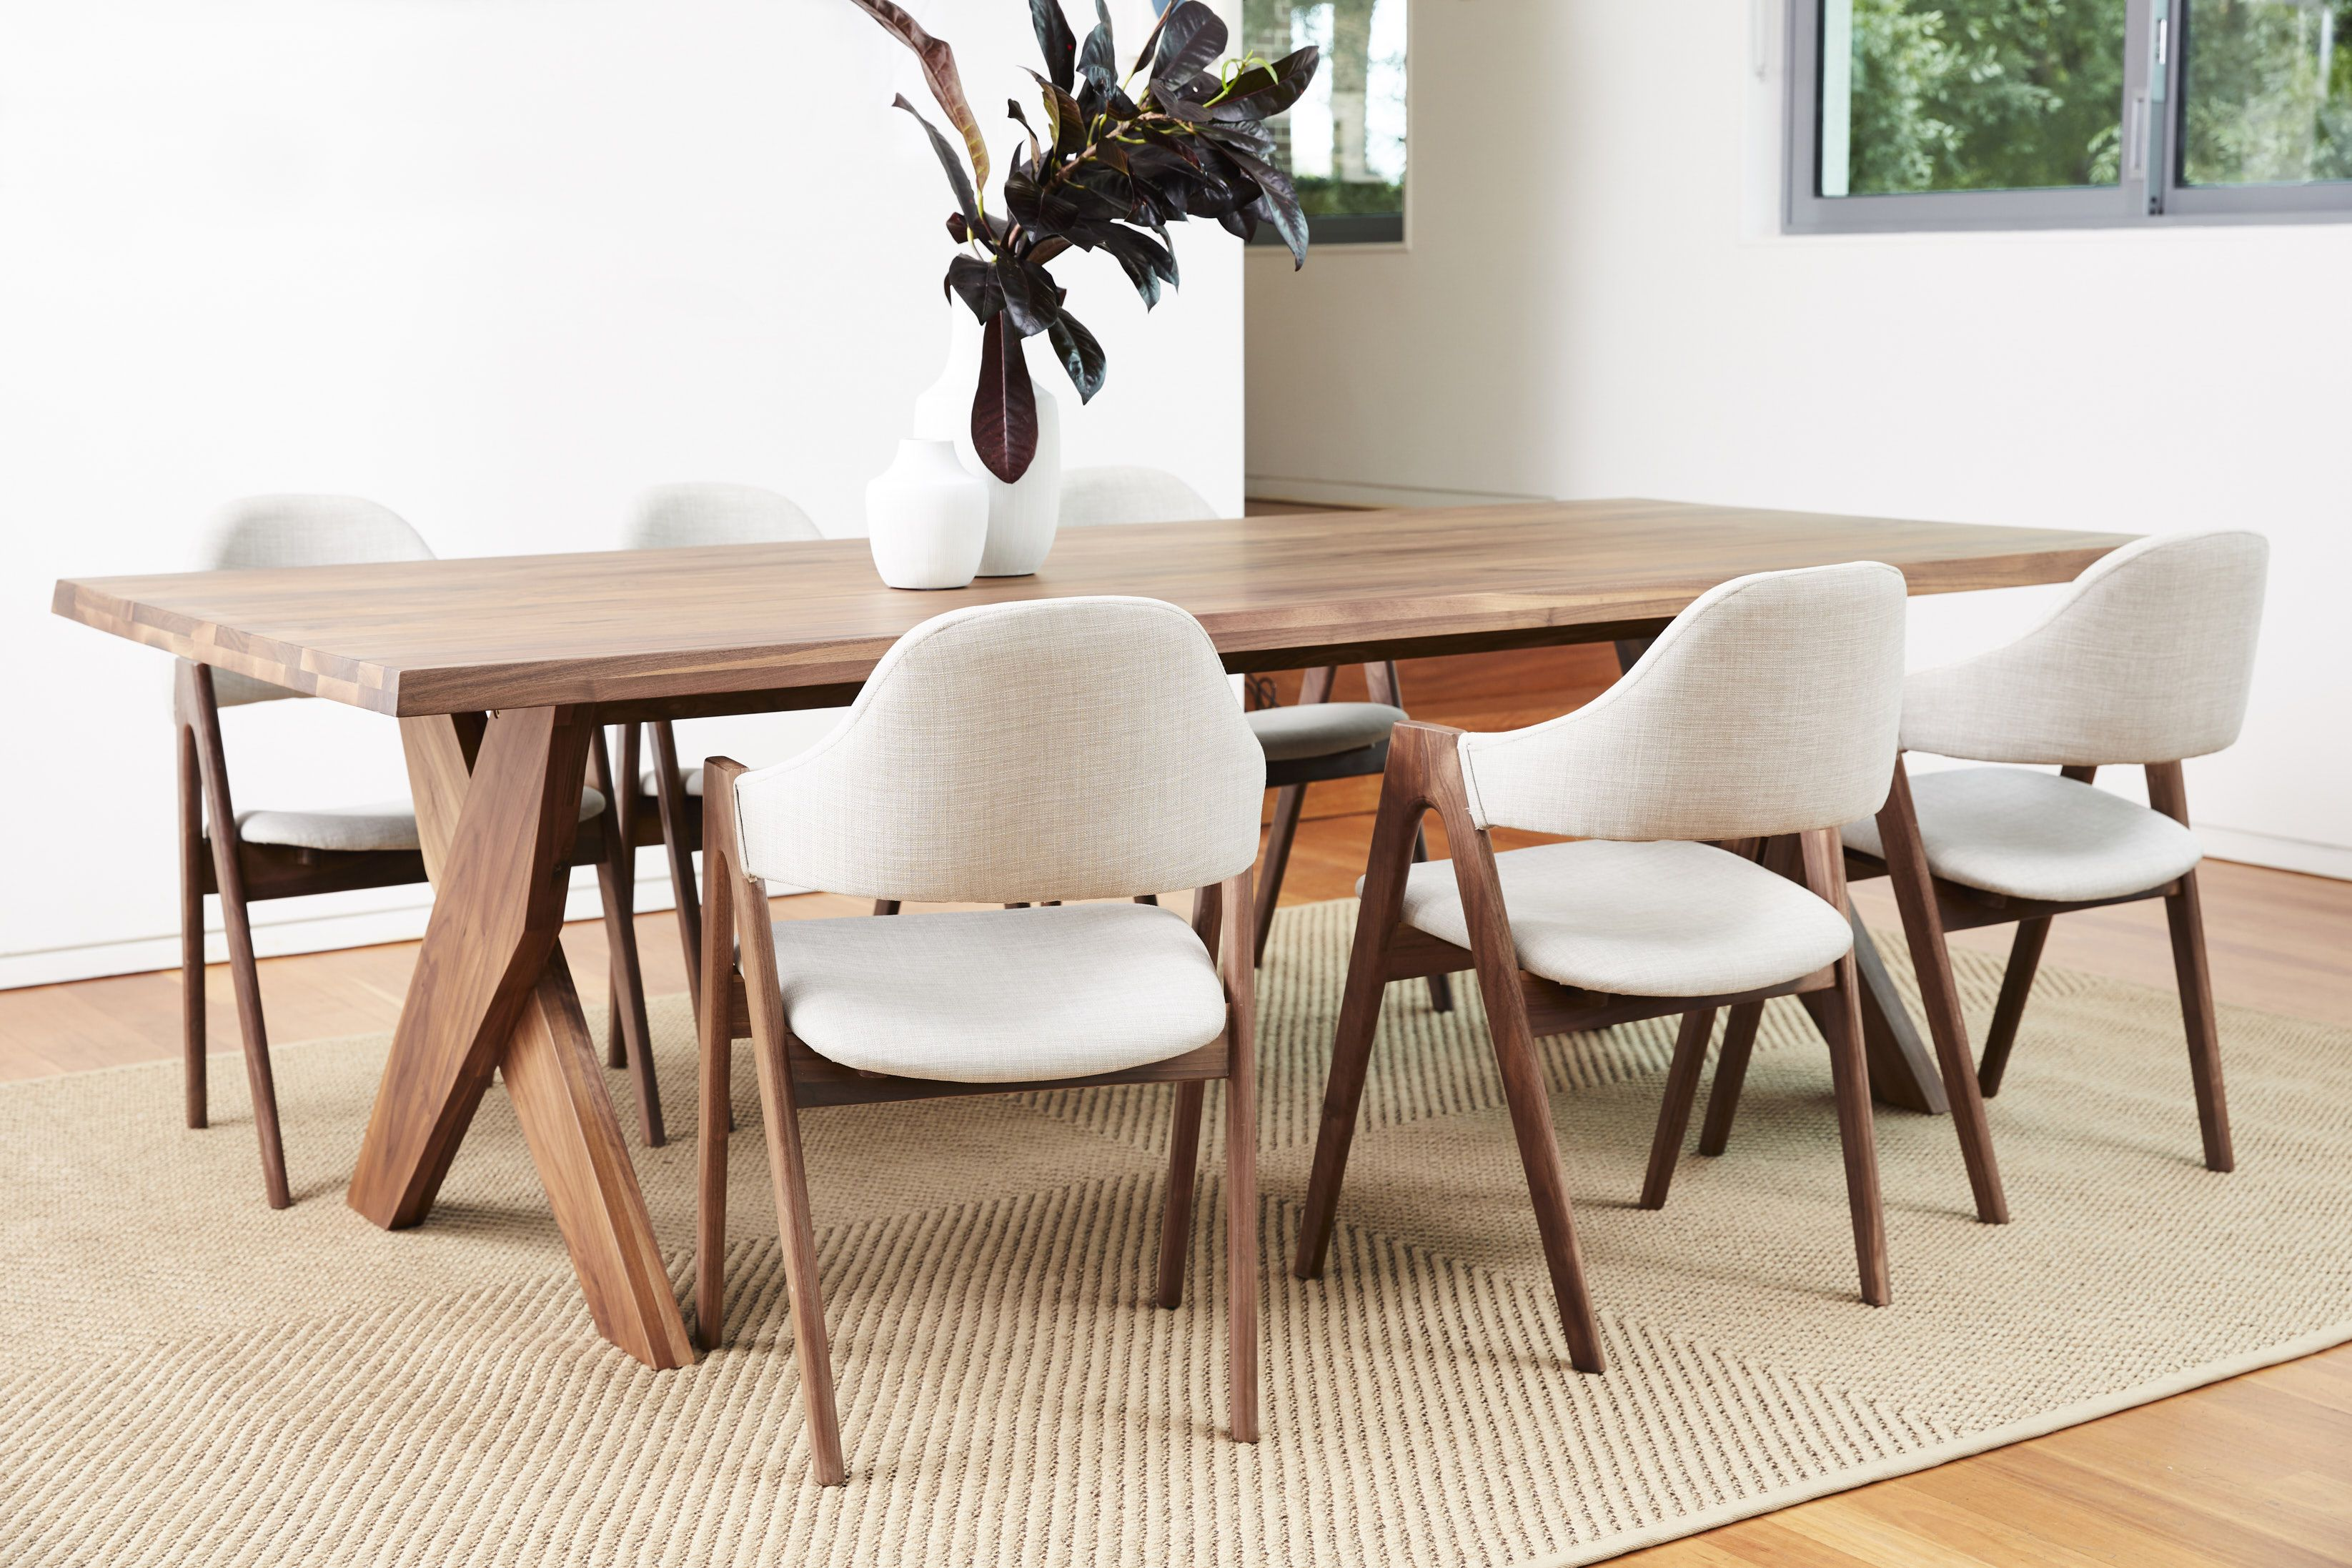 Axel Dining Table With Off White Nestor Chairs In American Walnut Midcentury Modern Dining Table Scandi Dining Room Traditional Dining Tables